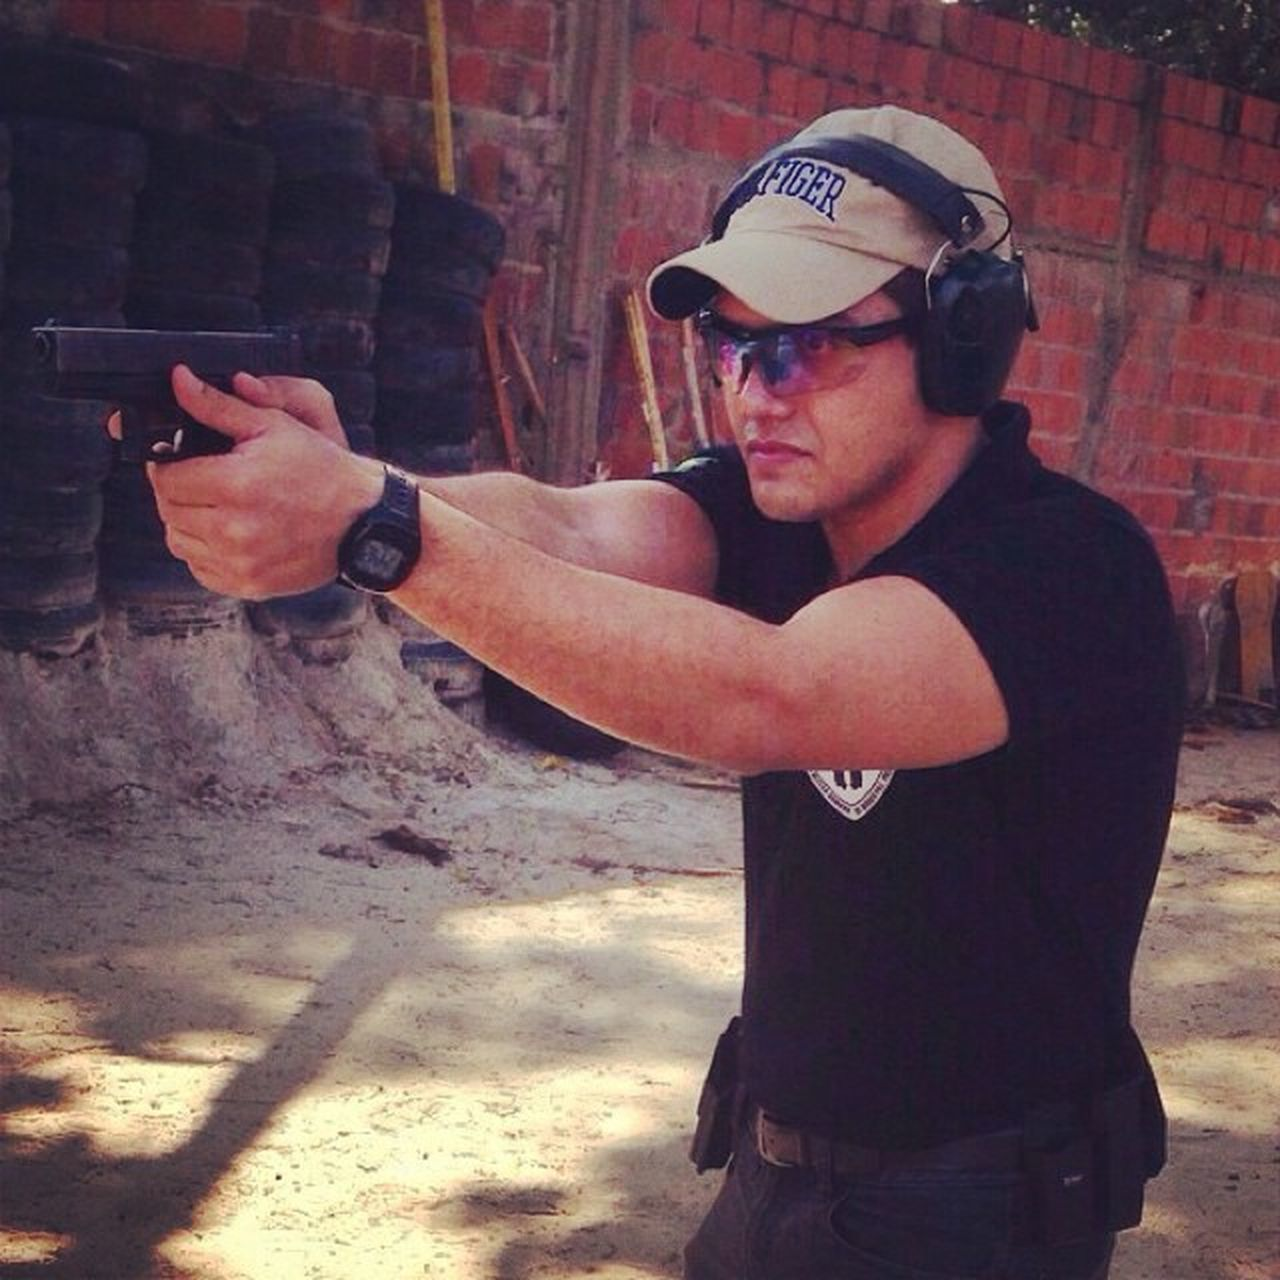 gun, aiming, protective eyewear, handgun, sunglasses, weapon, one person, ear protectors, standing, shooting a weapon, young adult, real people, outdoors, competition, sport, men, adult, human hand, day, people, adults only